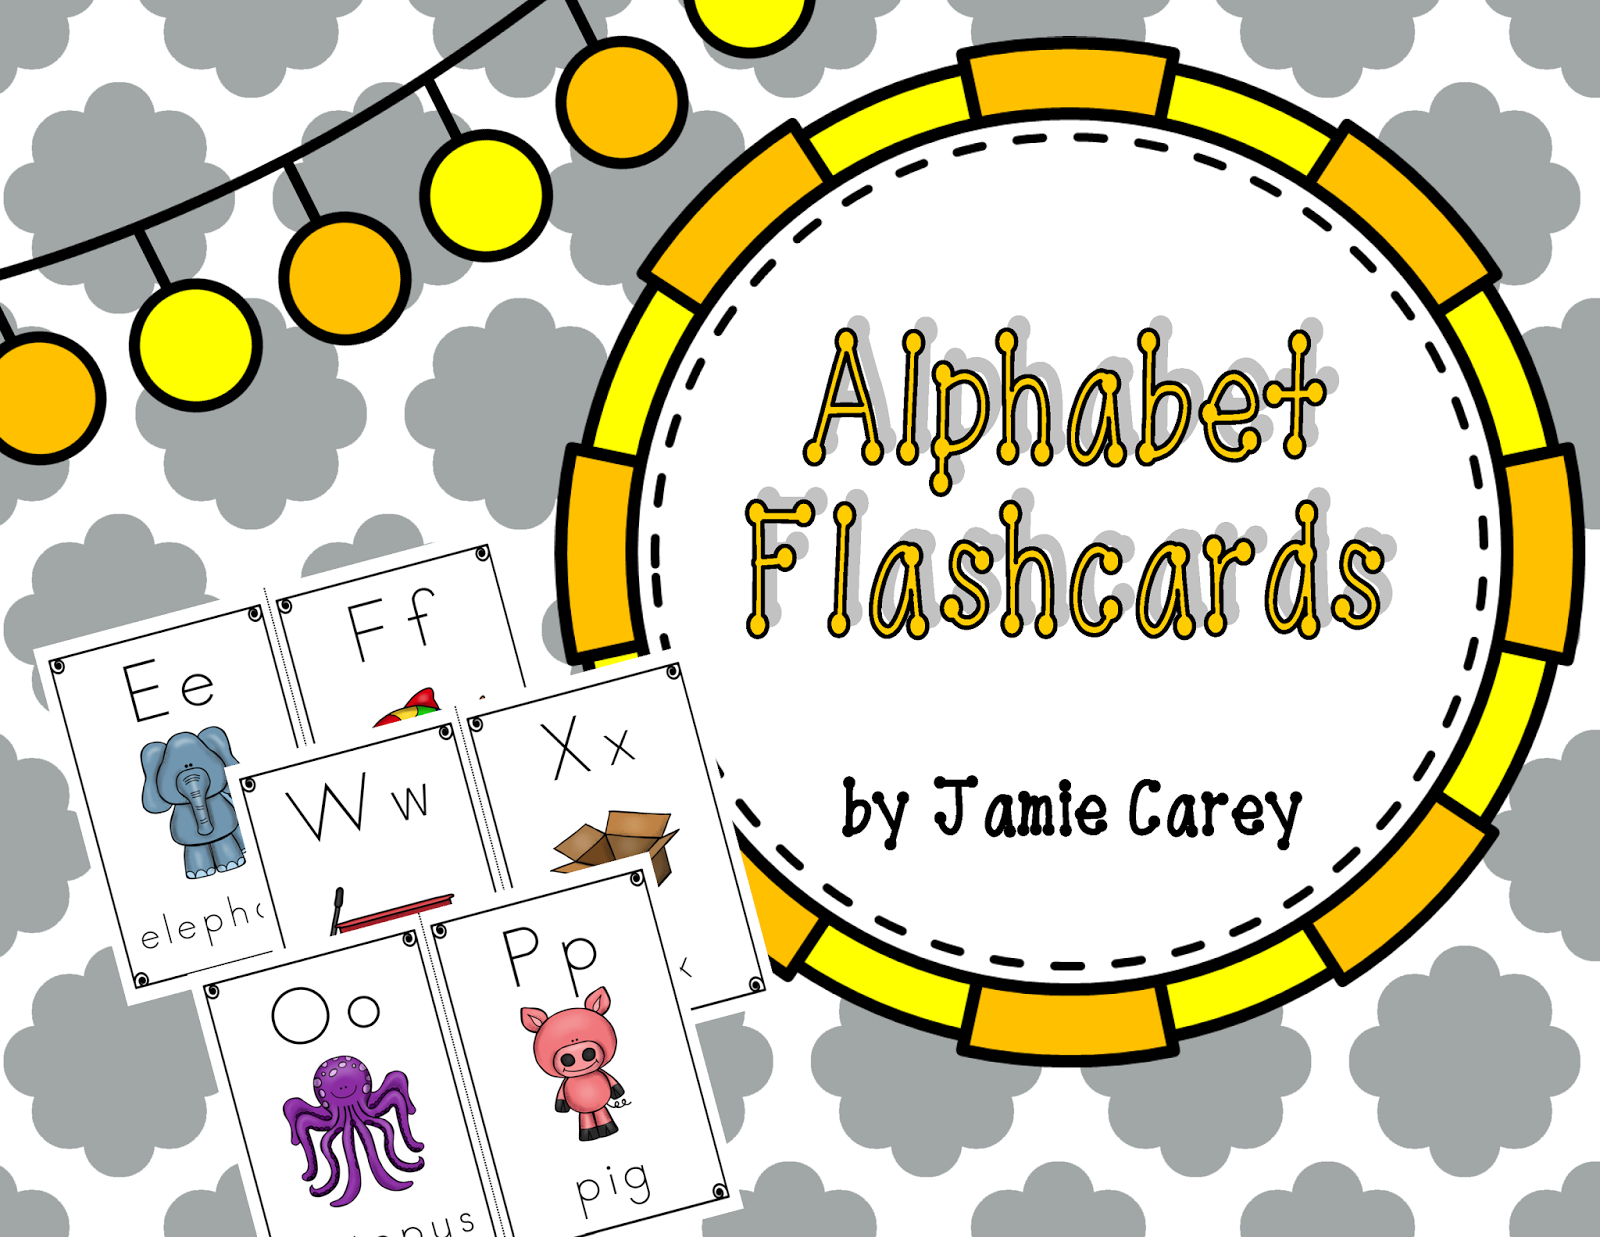 http://www.teacherspayteachers.com/Product/Alphabet-Flashcards-1515416